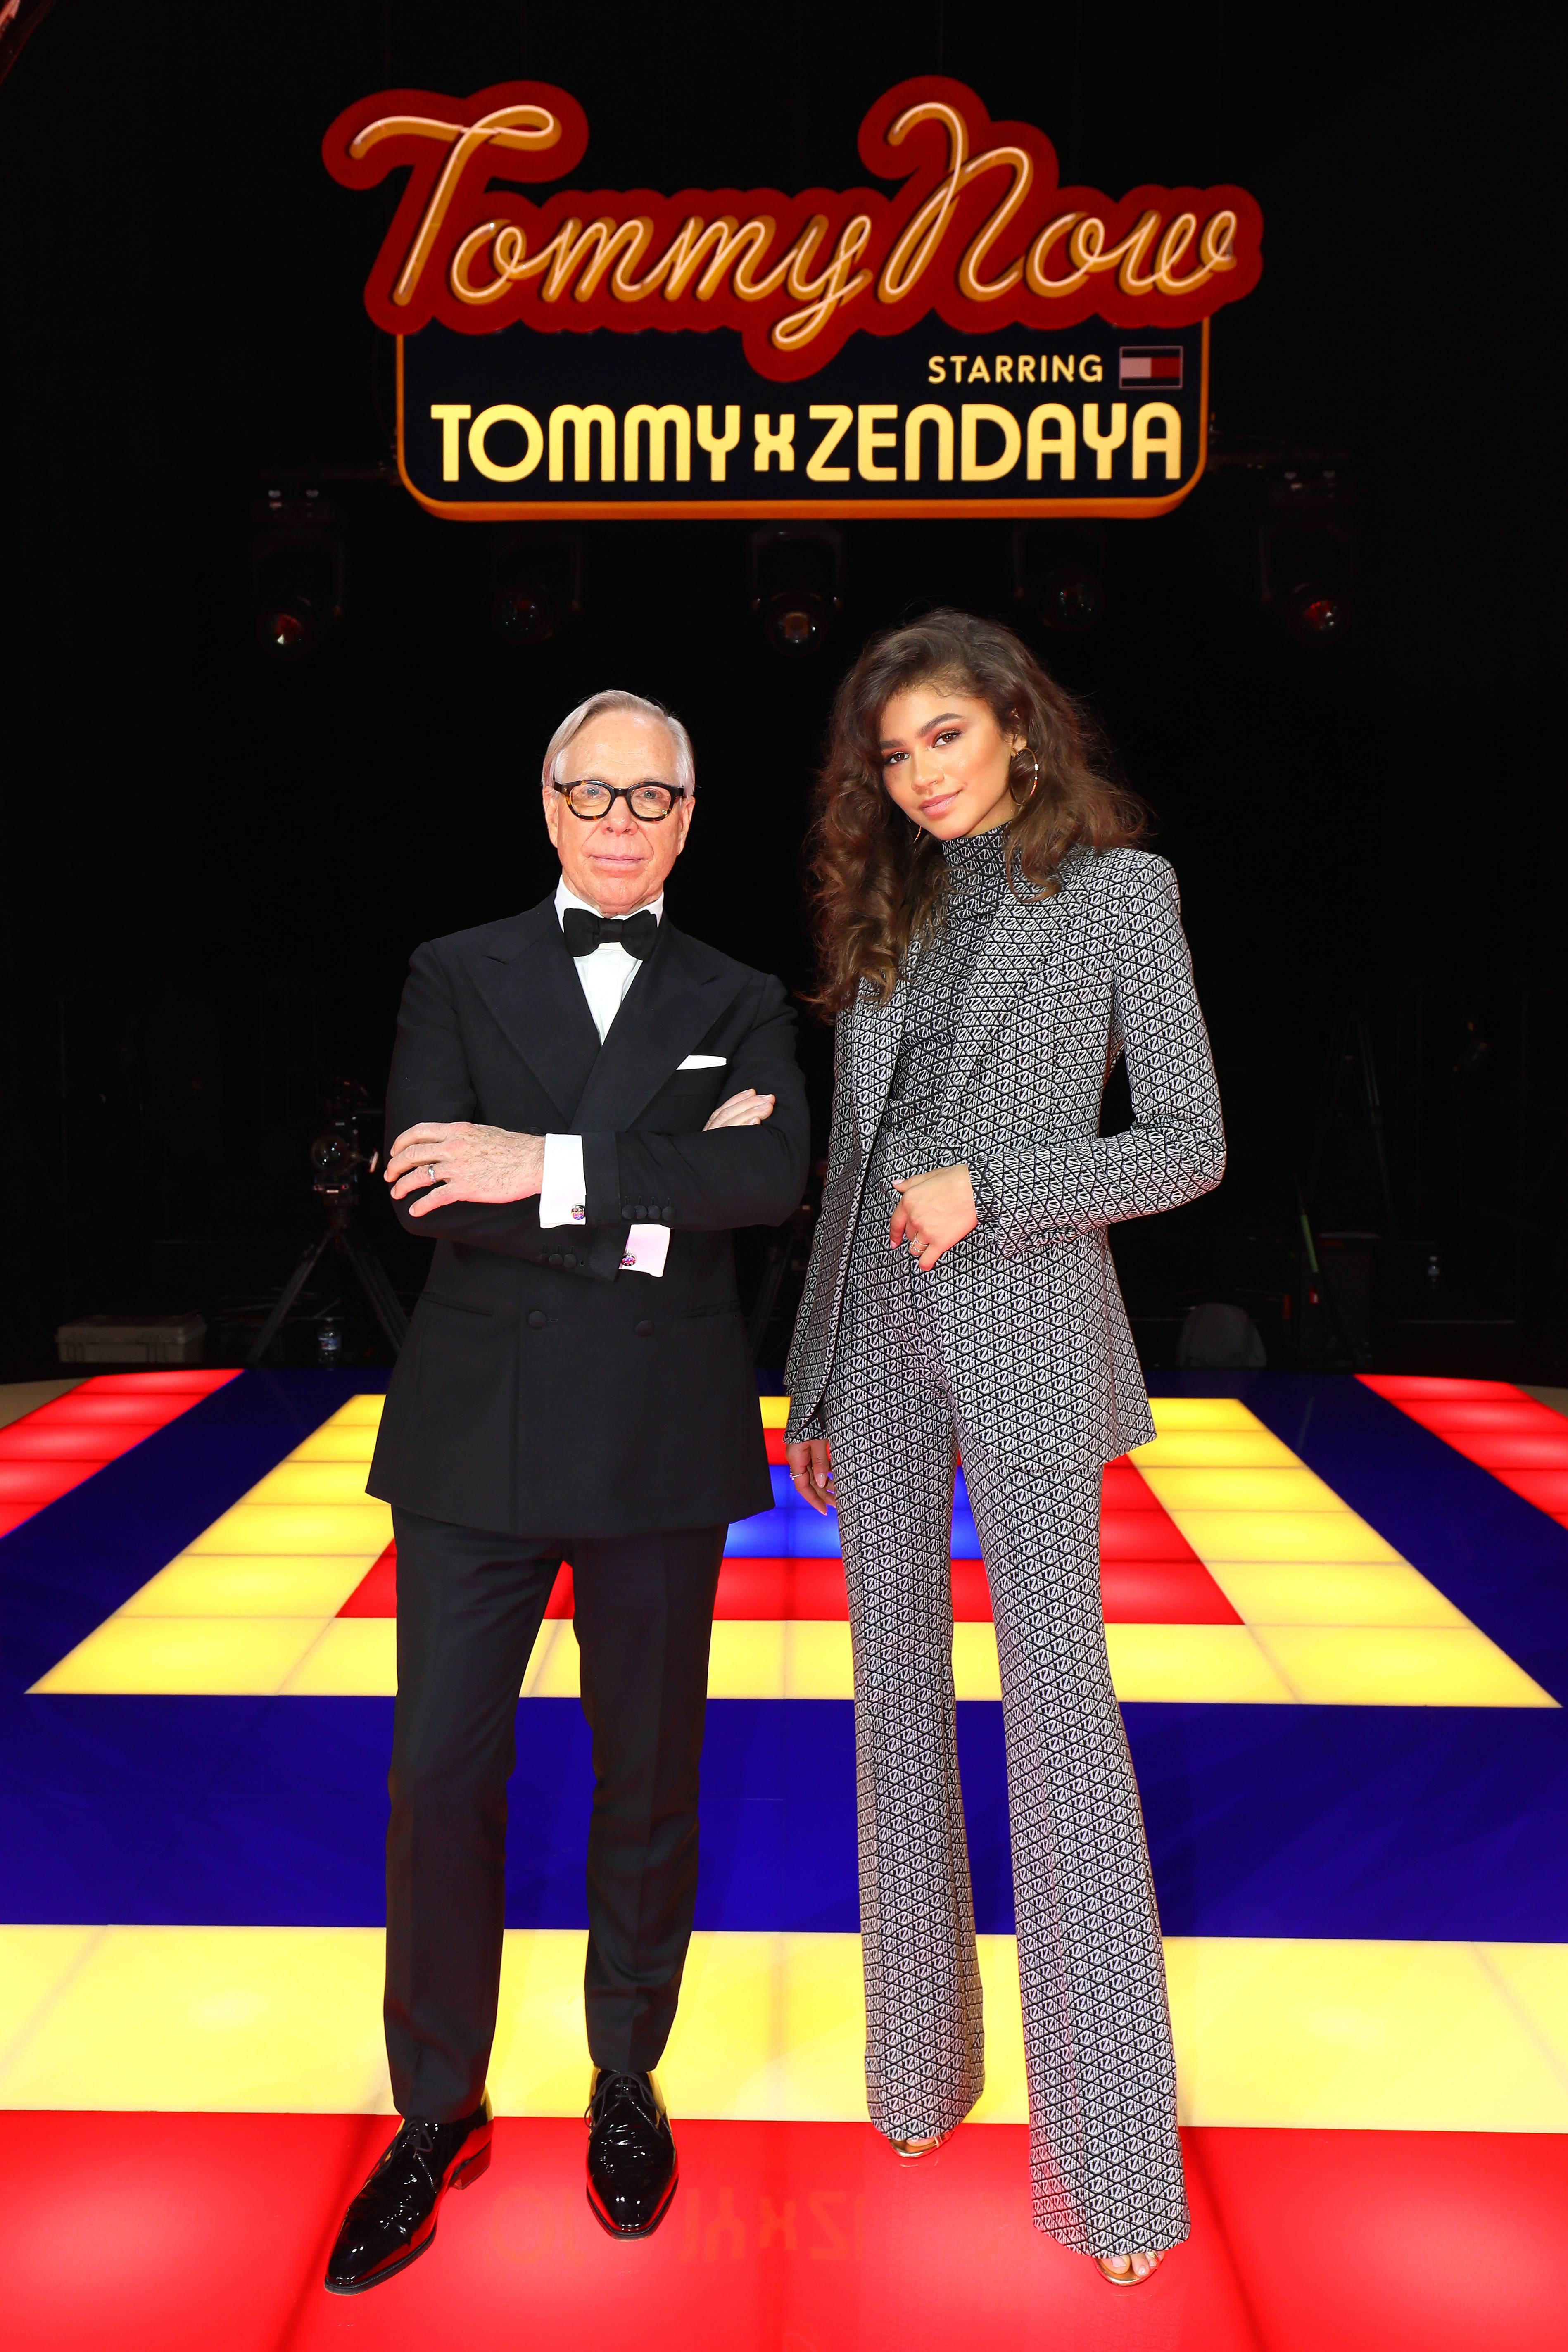 Runway Slay - After her iconic Tommy X Zendaya runway show during Paris Fashion Week, Zendaya posed with Tommy Hilfiger with one of the custom pieces from their 70s inspired collection!(Photo: Tim P. Whitby/WireImage)